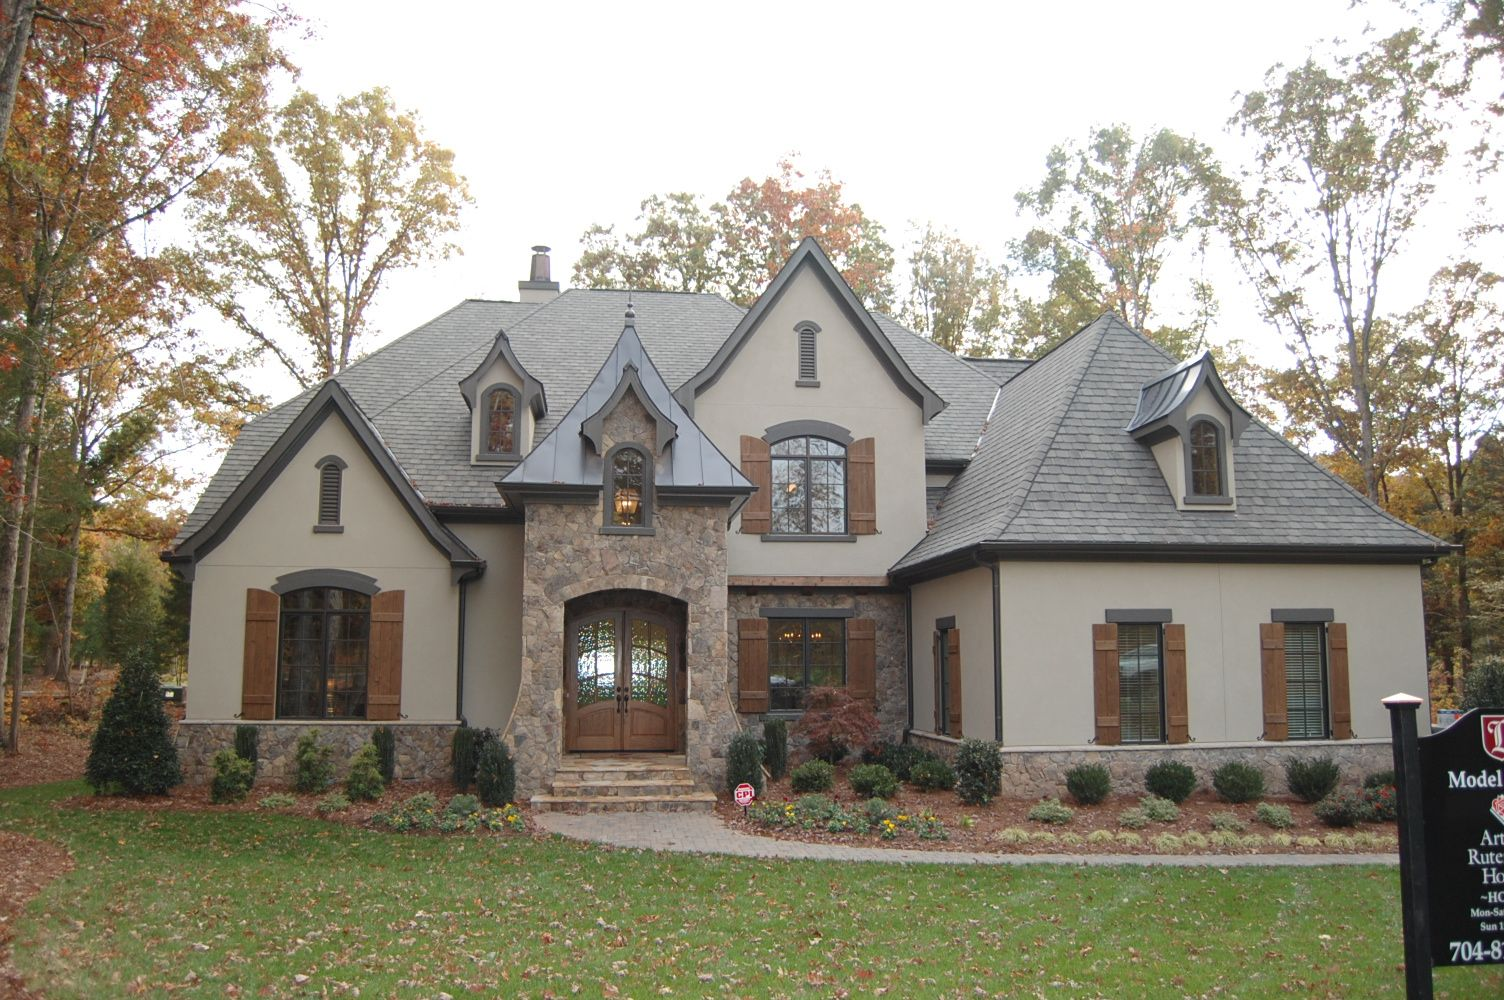 Bordeaux 1221 model bc93 a r h exteriors in 2019 house - French country exterior house colors ...